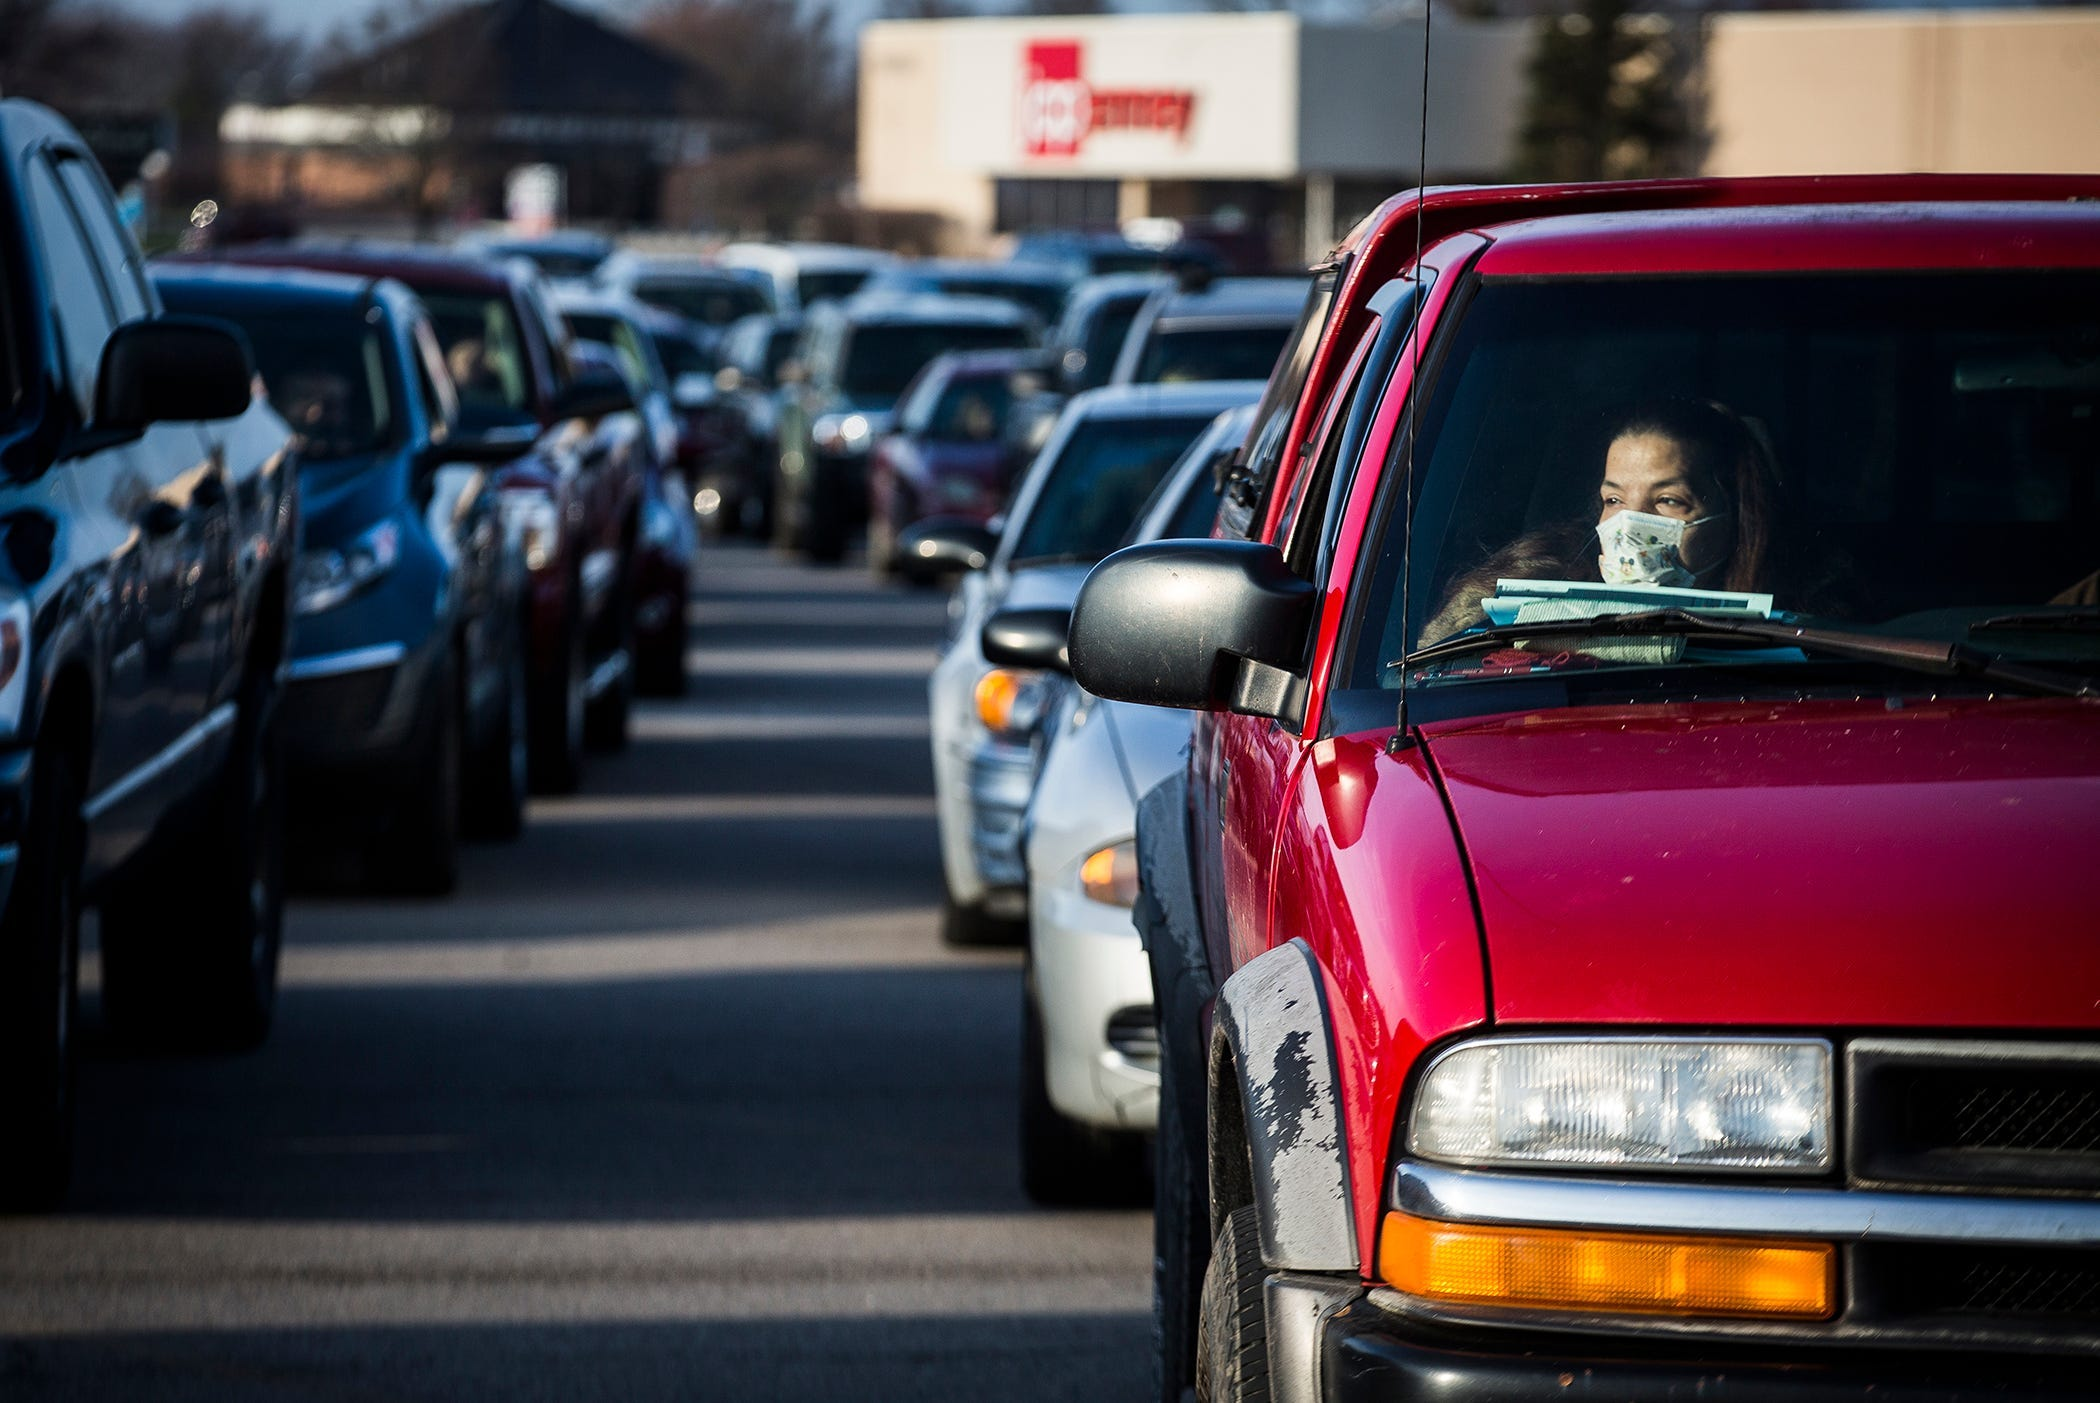 More than 400 cars, many with multiple occupants, were parked outside of the closed Muncie Mall for a Second Harvest Tailgate that gave away food to families in need in Muncie, Ind. on March 27, 2020. The tailgate is one of several Second Harvest is holding to combat hunger during the pandemic.